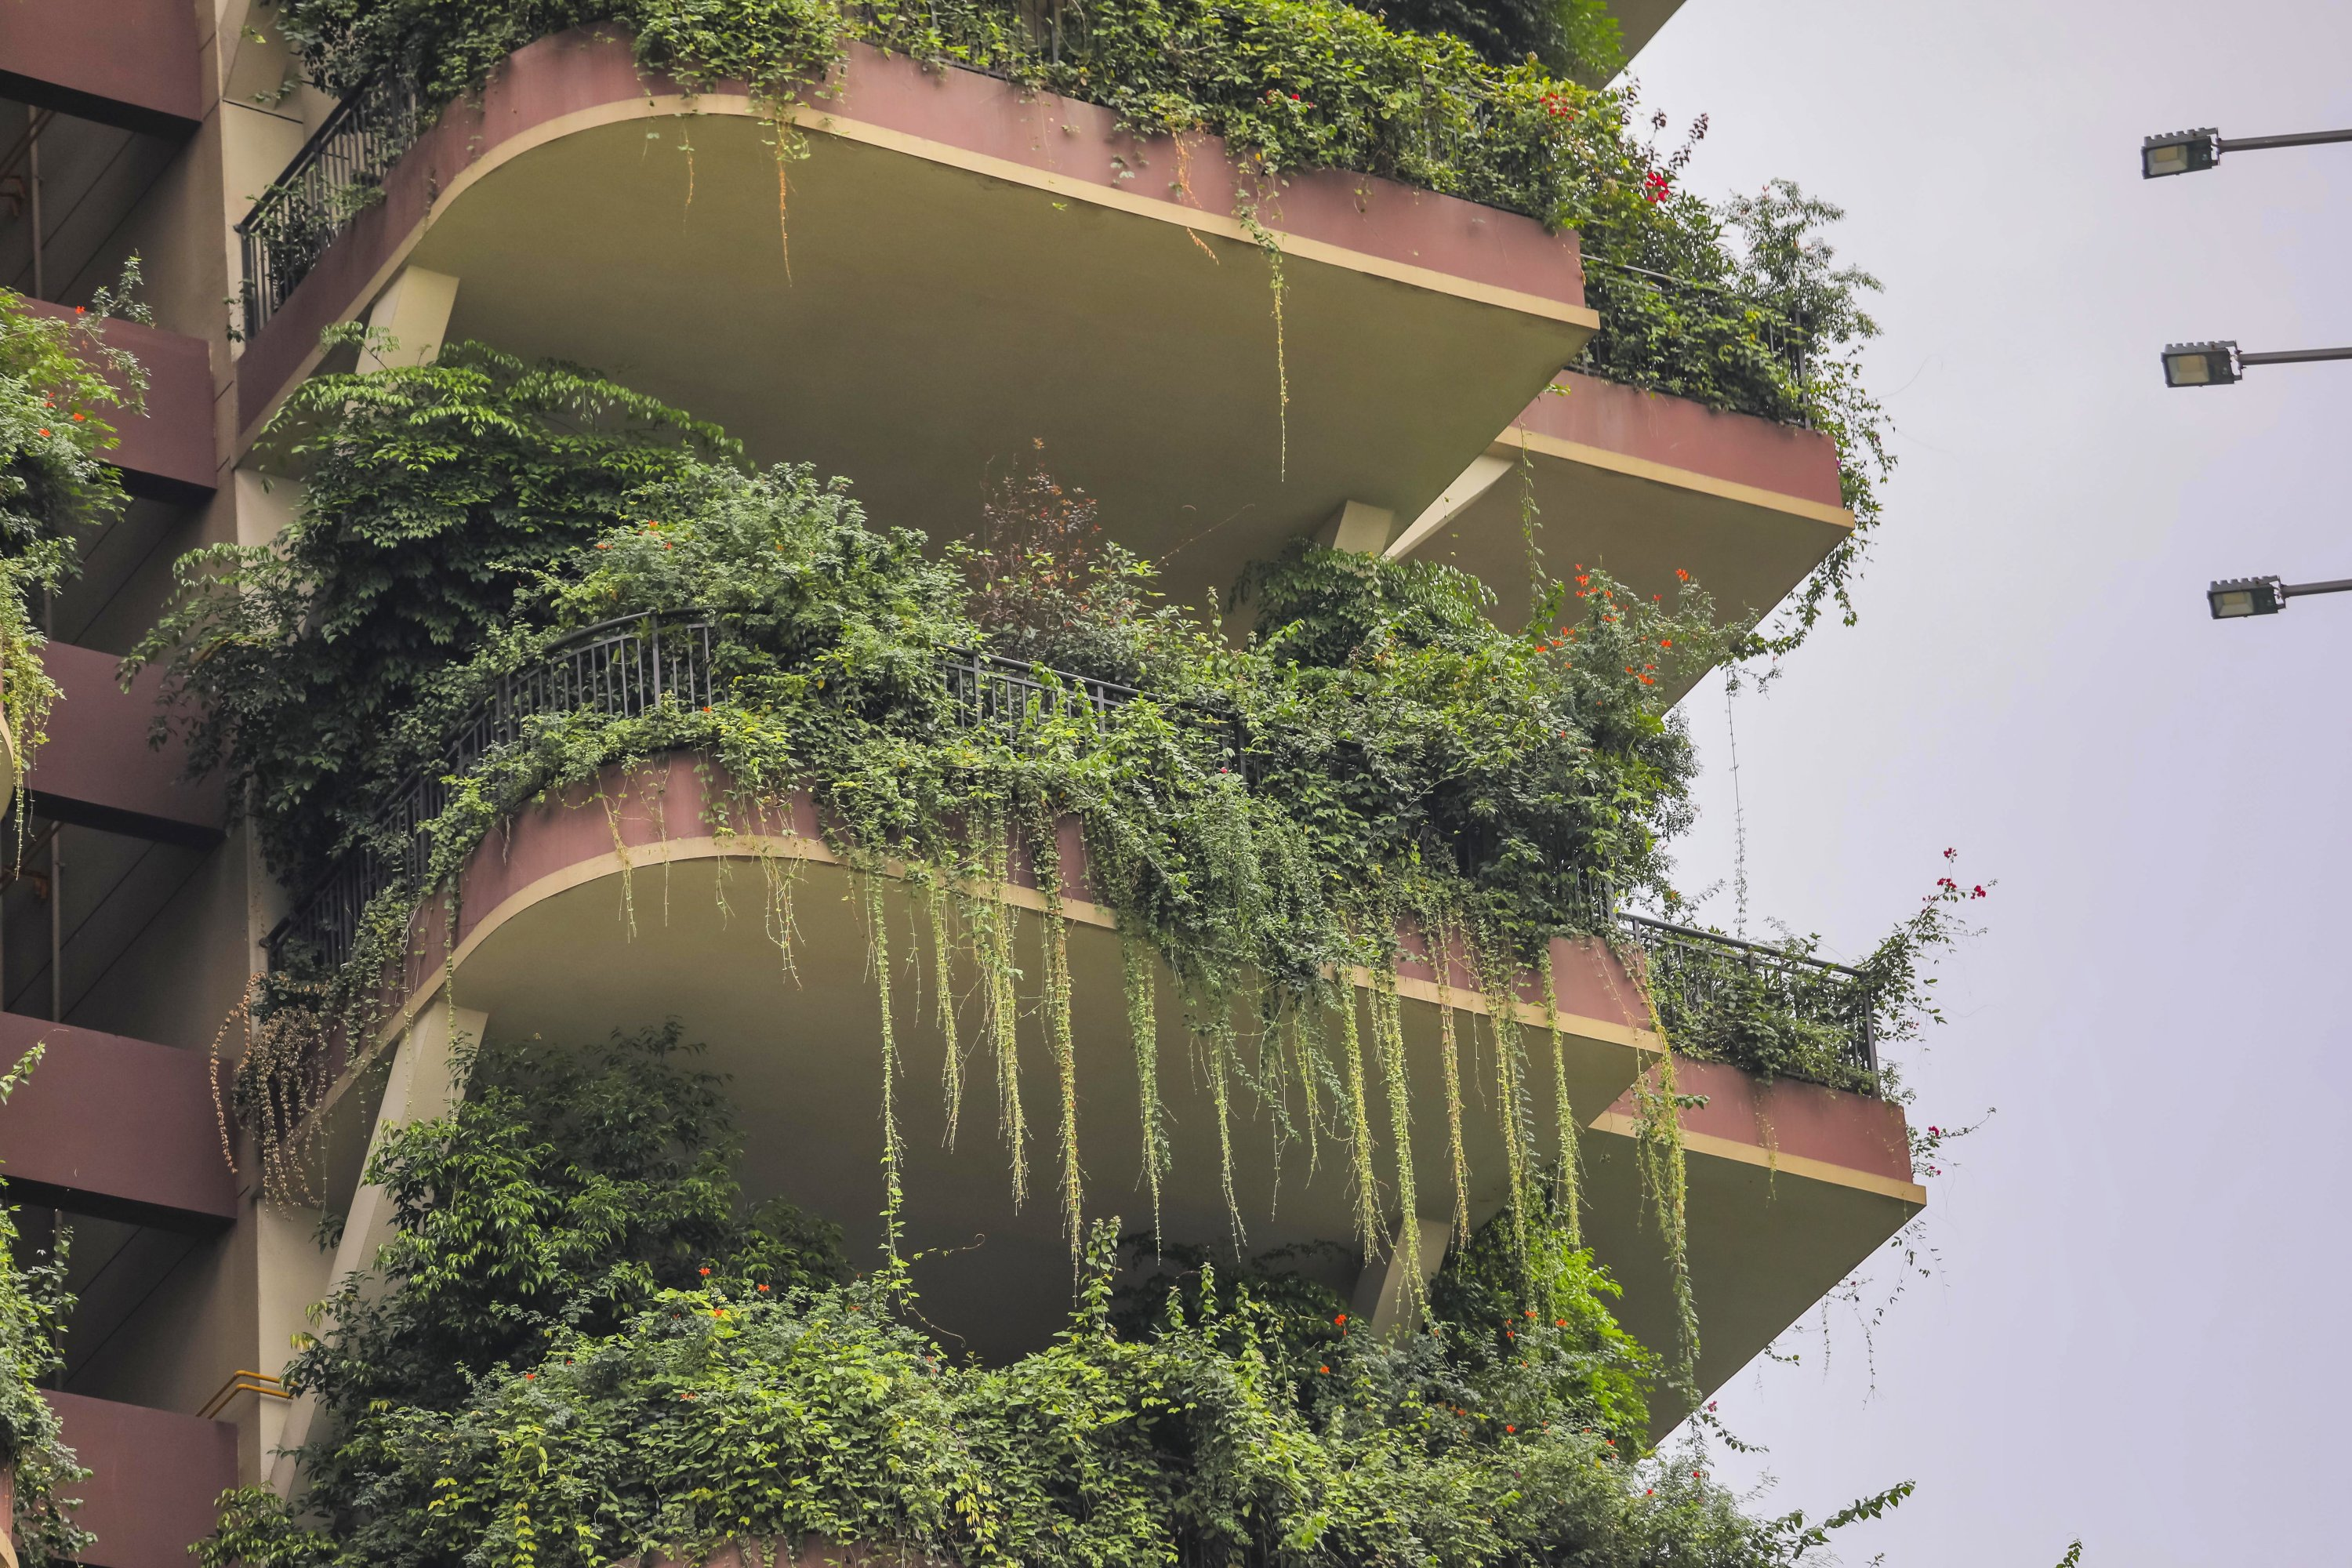 Balconies at Qiyi City Forest Garden residential buildings complex are overrun by plants in Chengdu, China, Sept. 15, 2020. (EPA Photo)